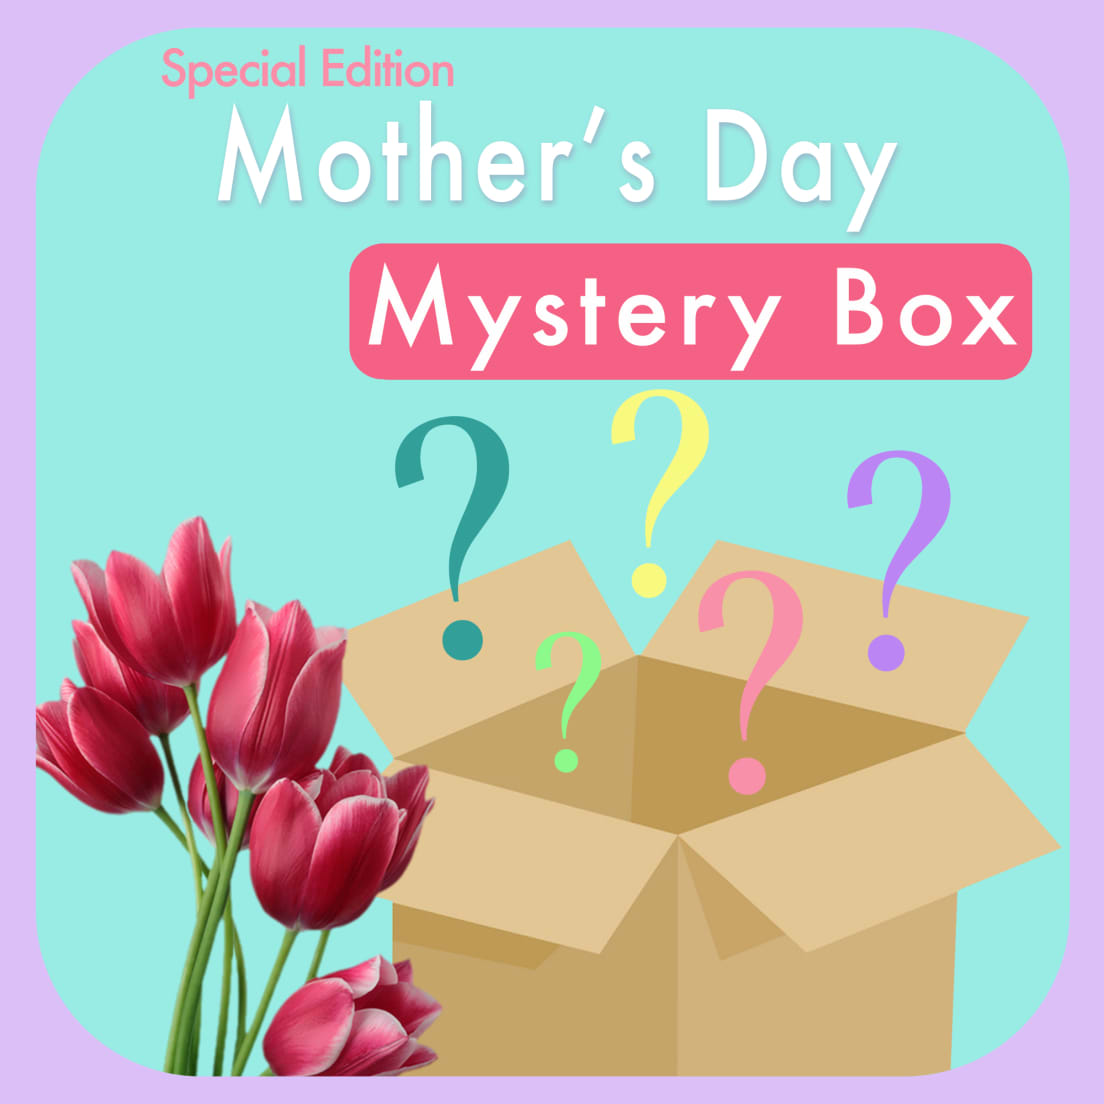 aa30af36167 Special Edition: Mother's Day 10 Item Mystery Box